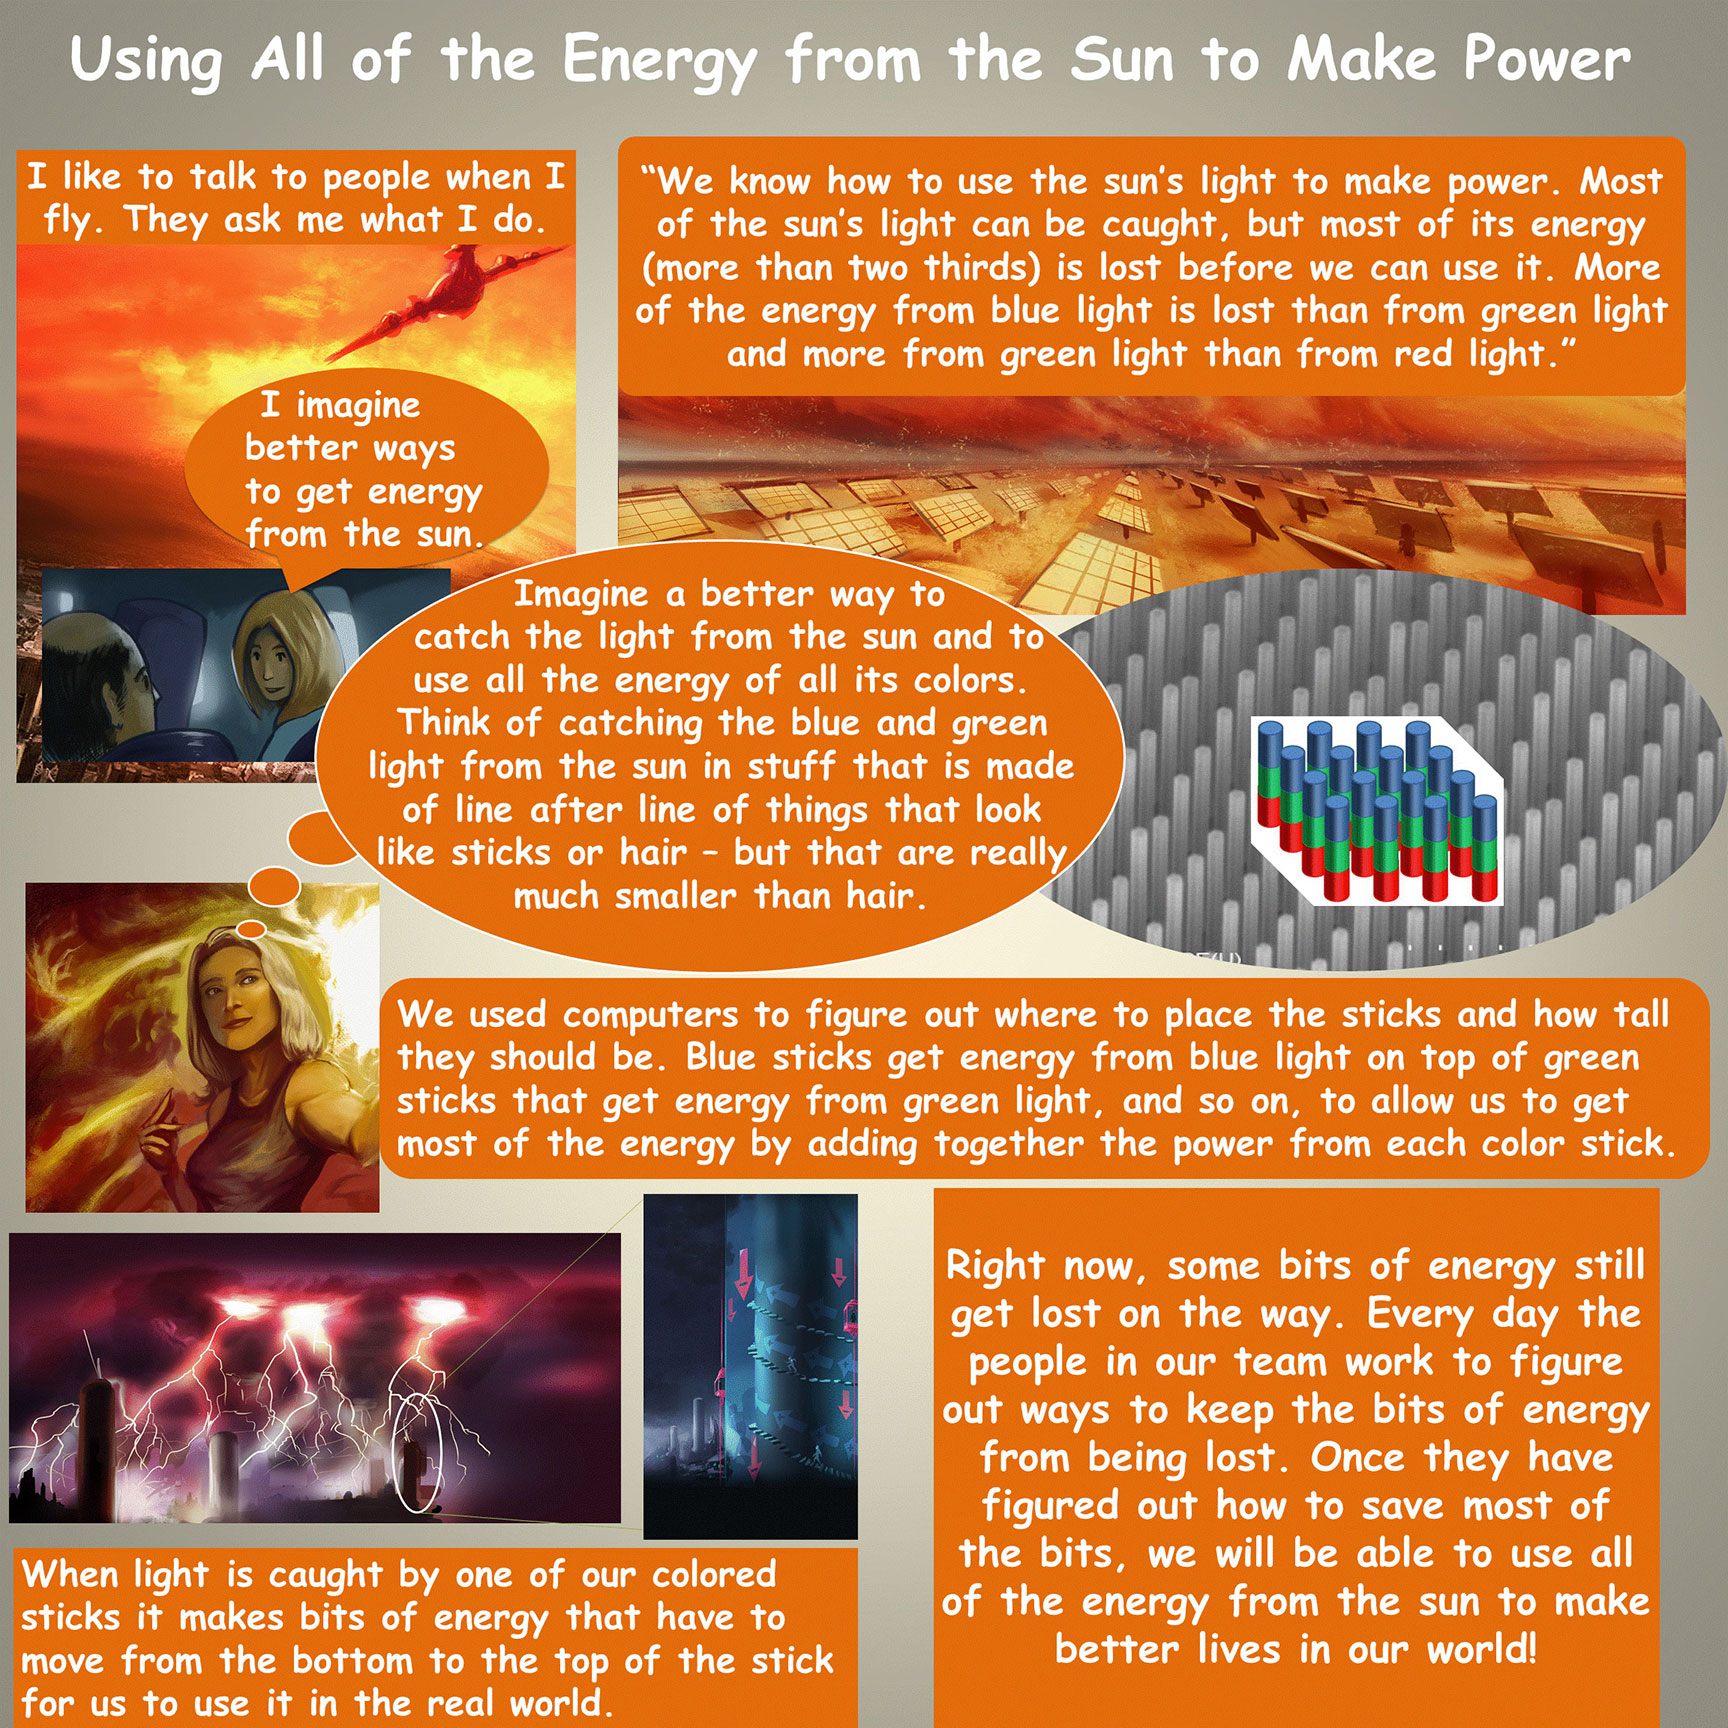 Using all the Energy from the Sun to Make Power